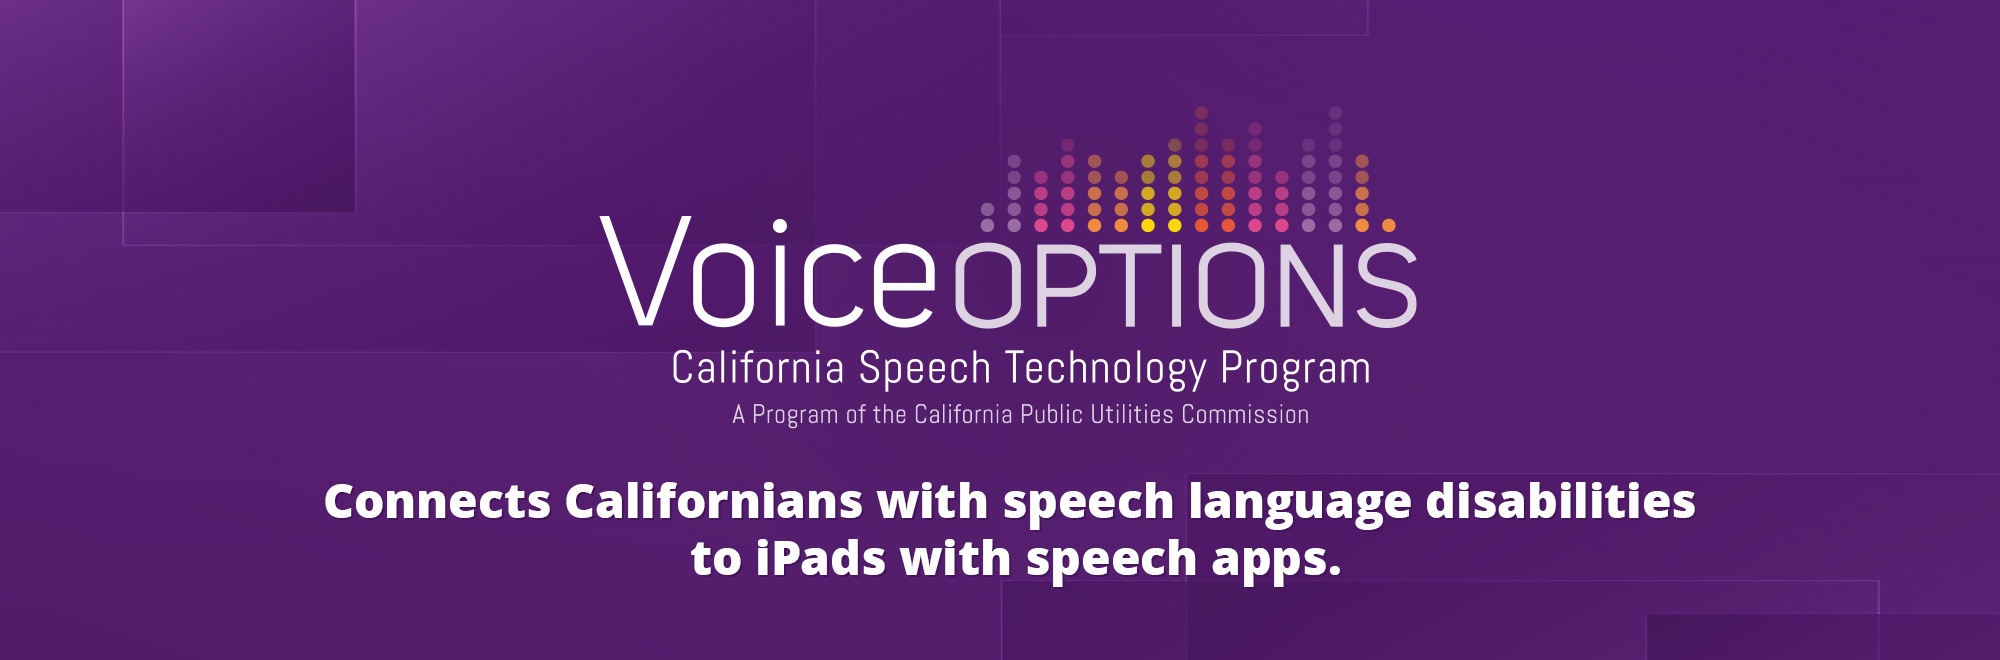 Banner of Voice Options: Connects Californians with speech language disabilities to iPads with speech apps.